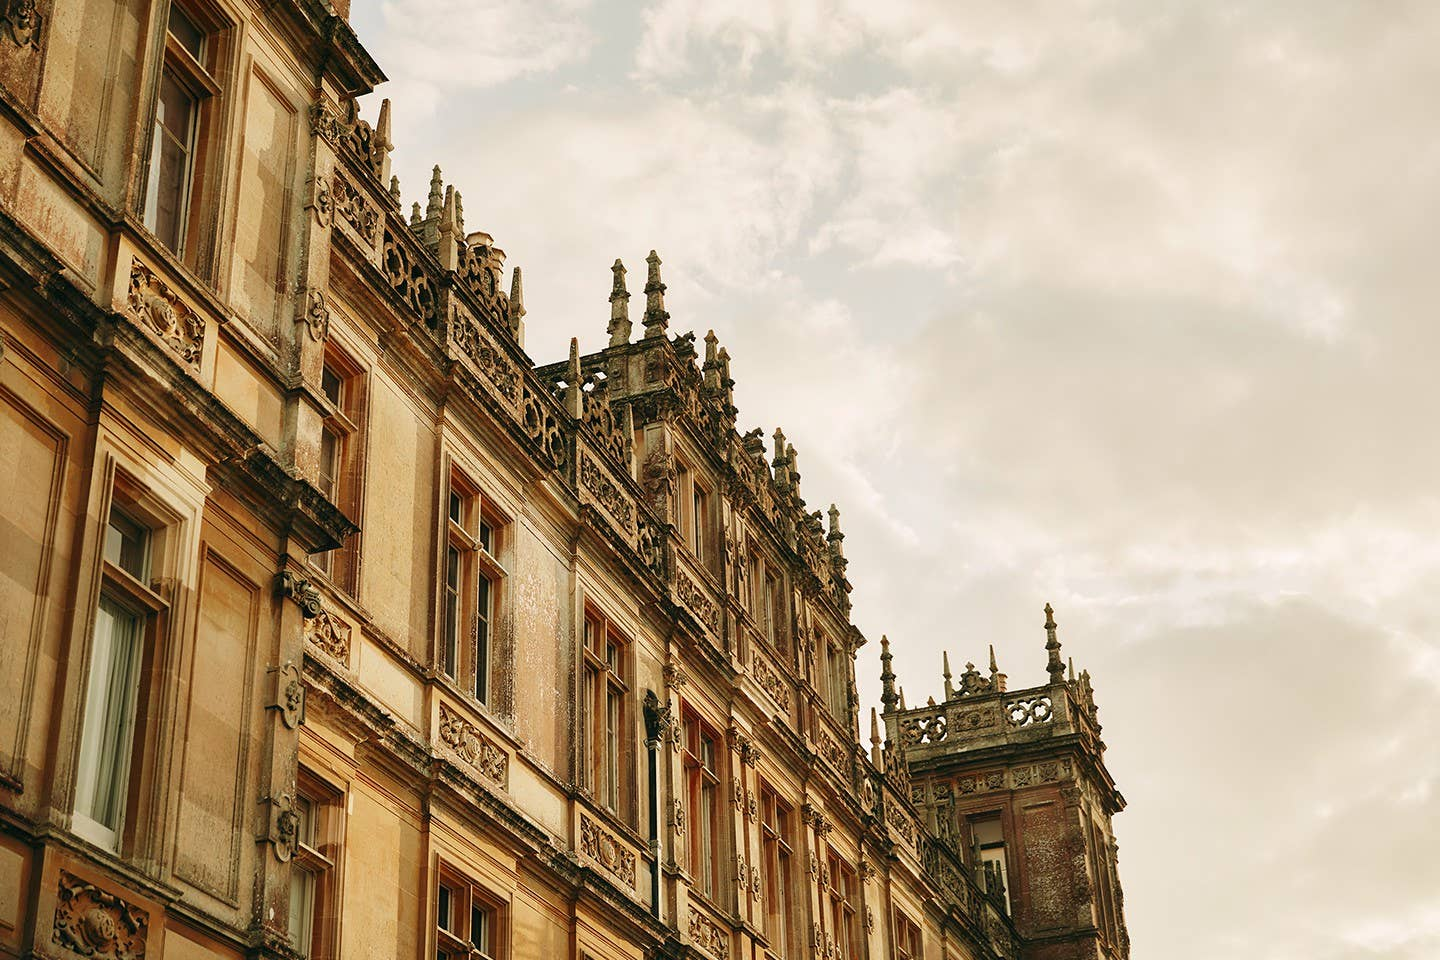 imagen 2 de Dormir en Highclere Castle, el castillo de Downton Abbey y el de Lord Carnarvon, mecenas de Howard Carter.